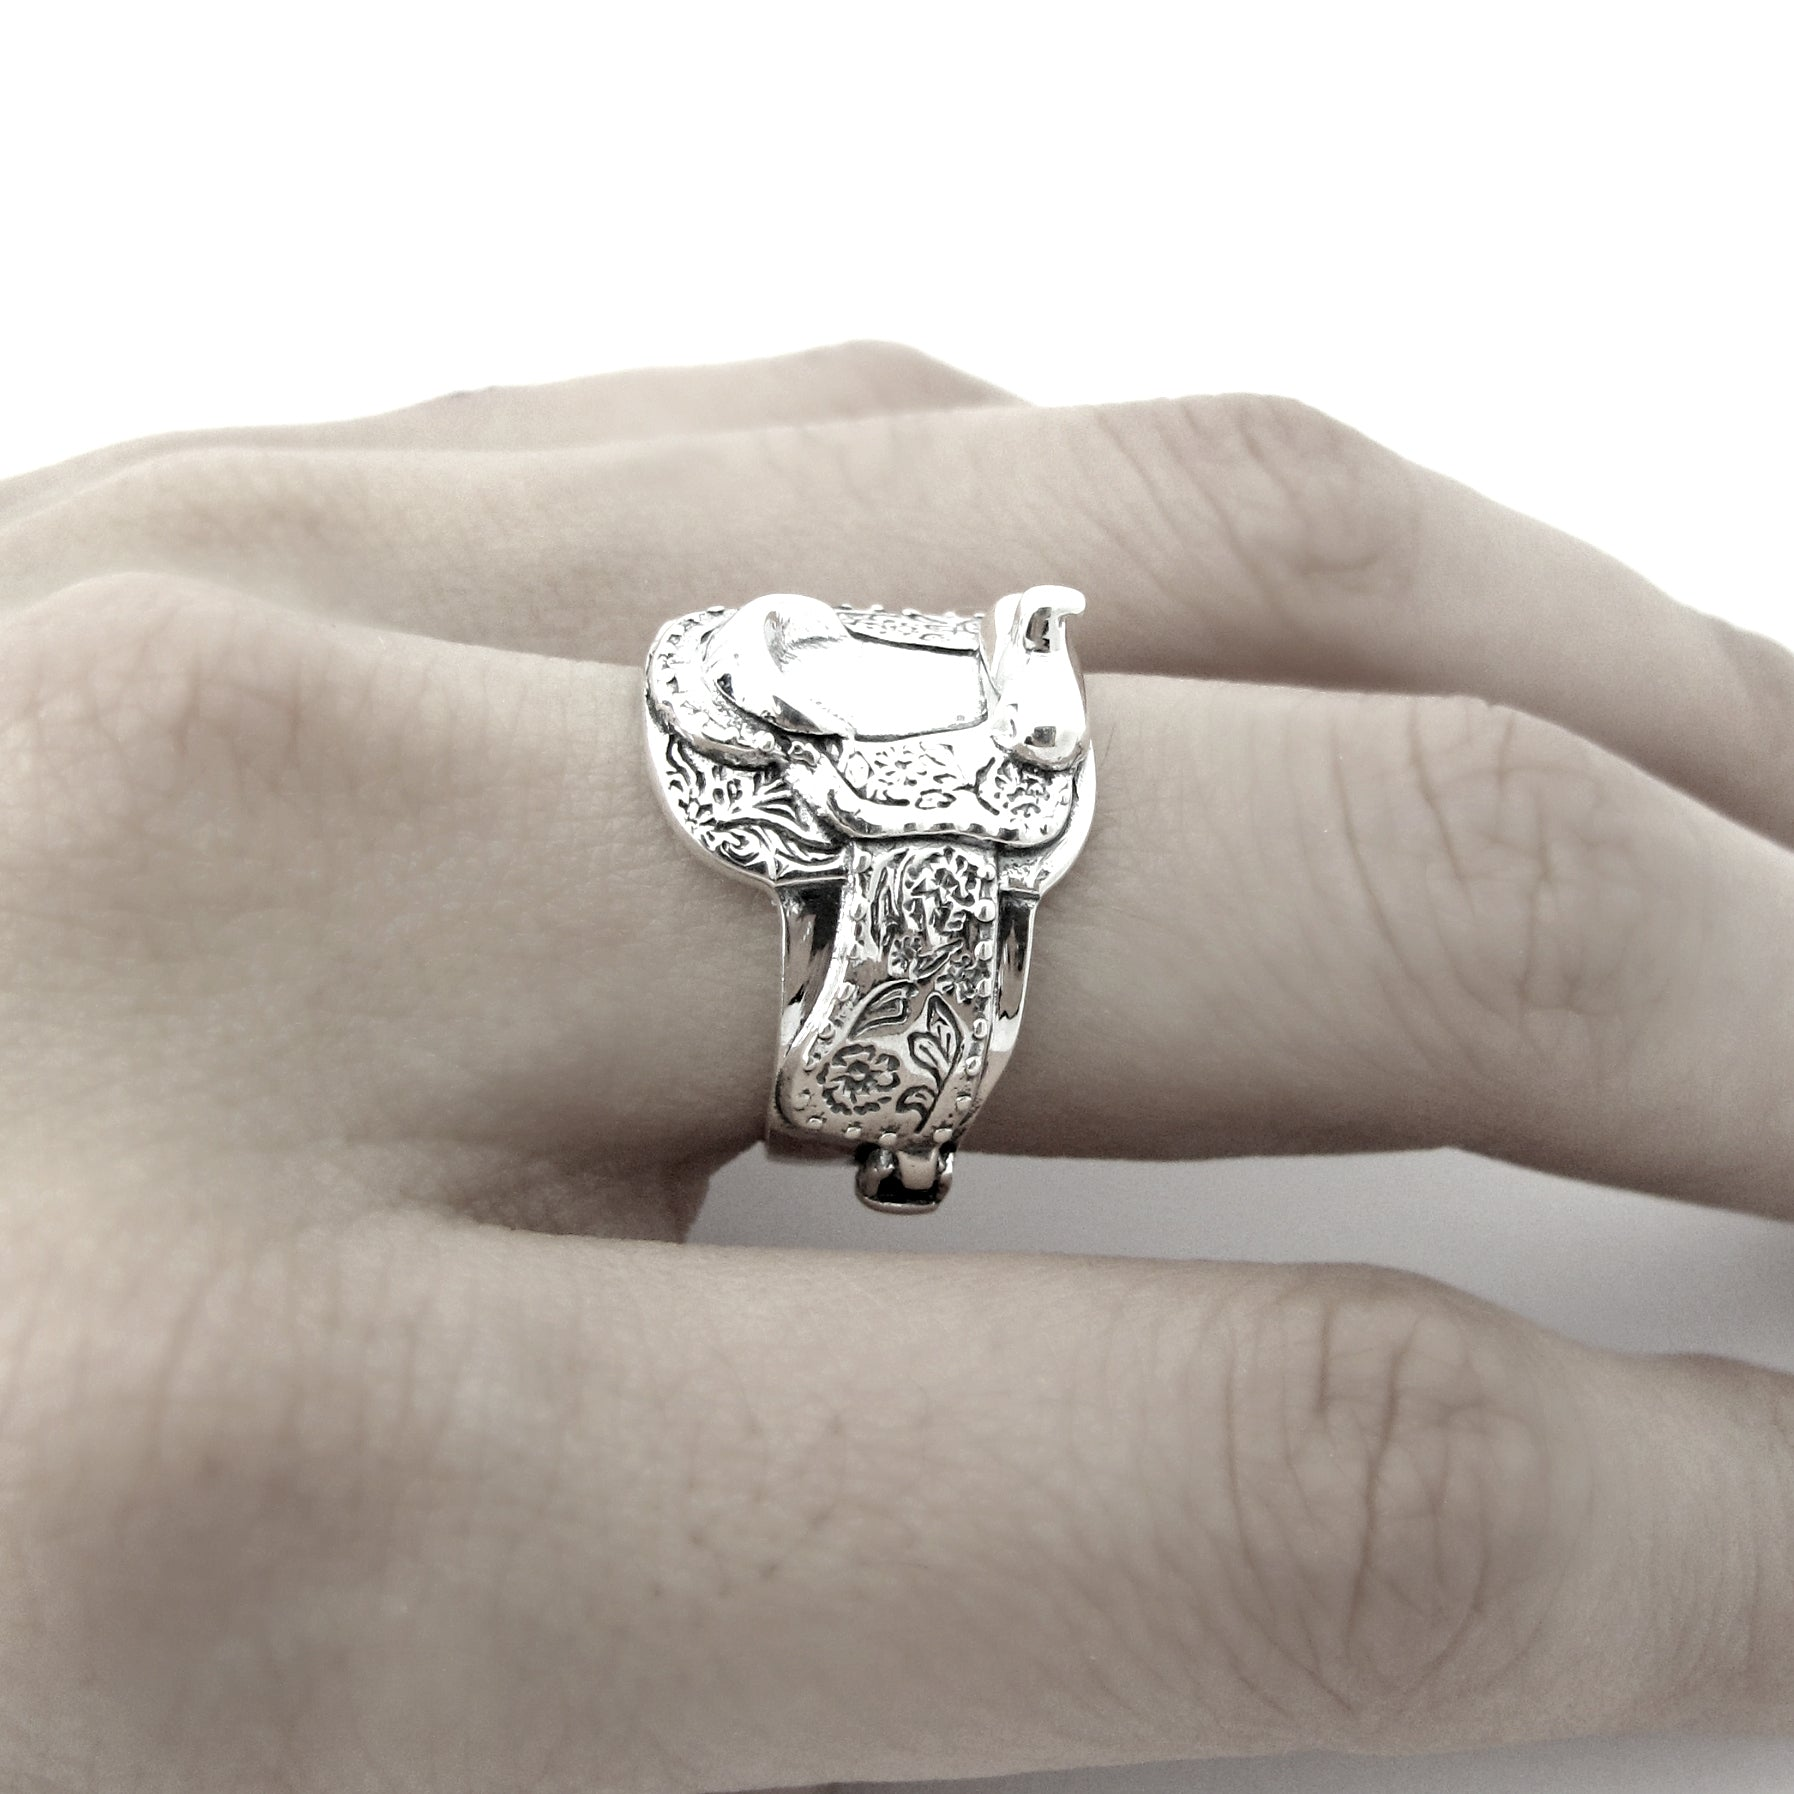 Western Saddle Ring